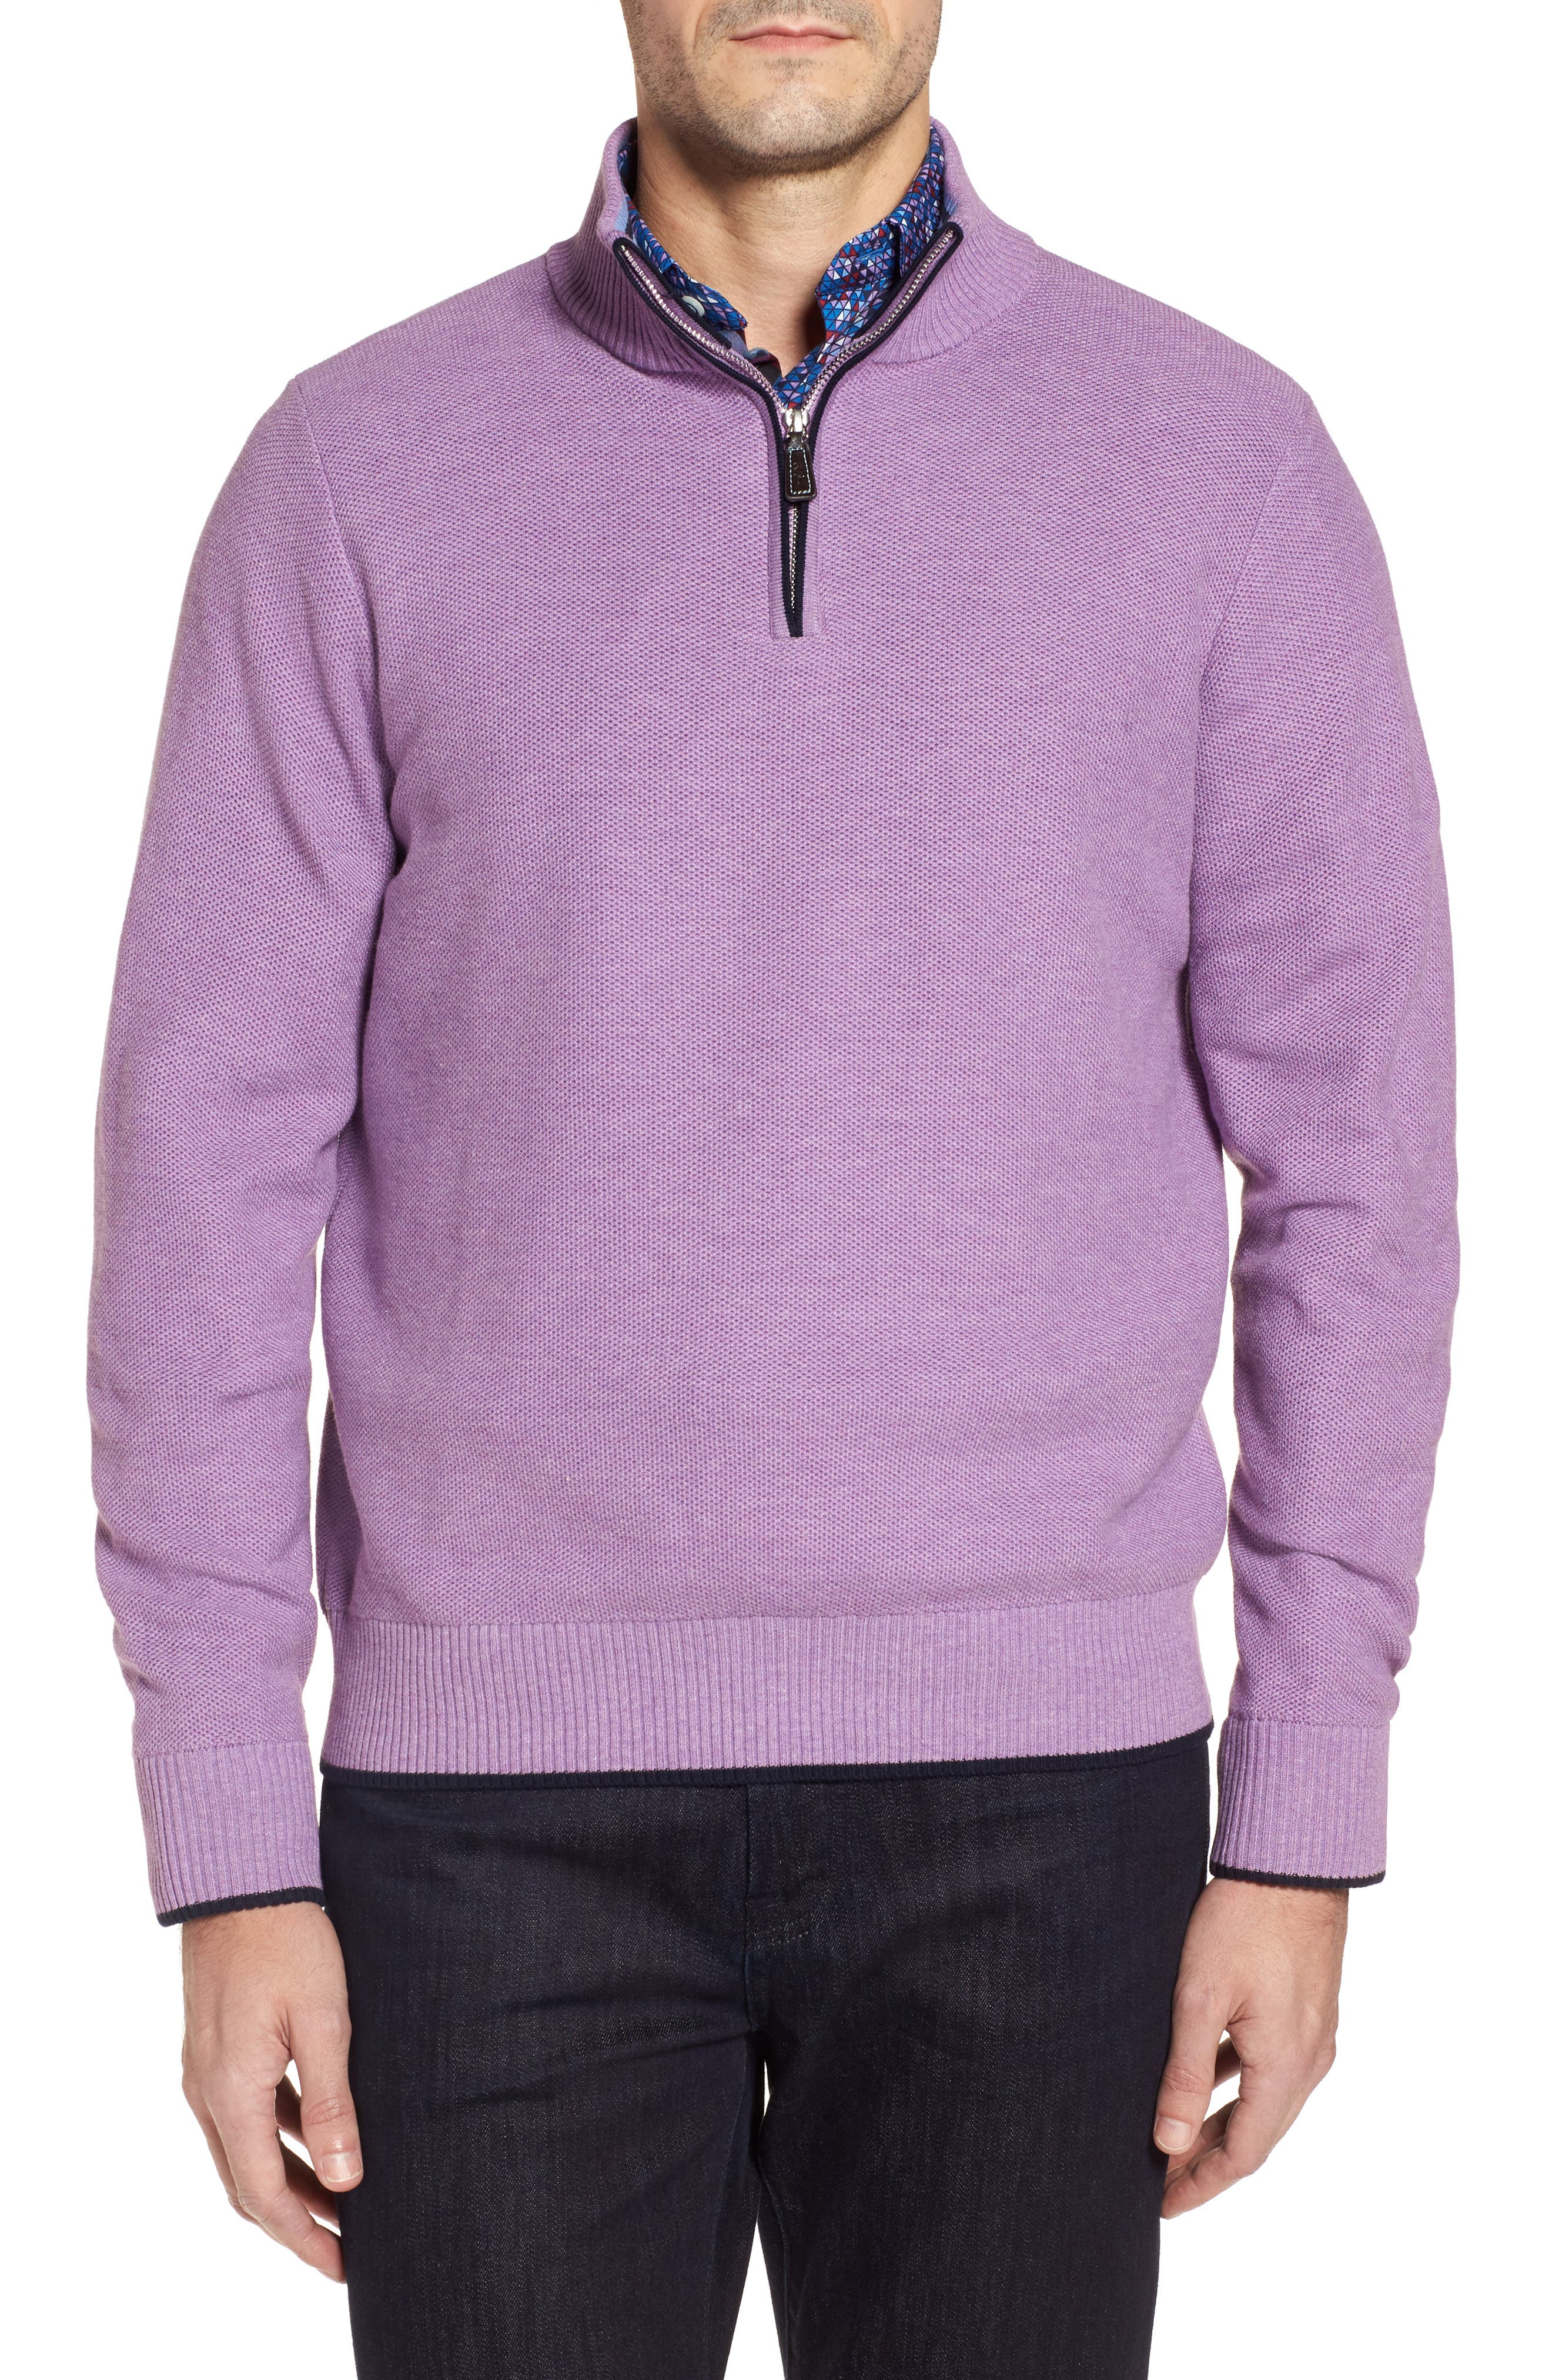 Alternate Image 1 Selected - TailorByrd Ossun Tipped Quarter Zip Sweater